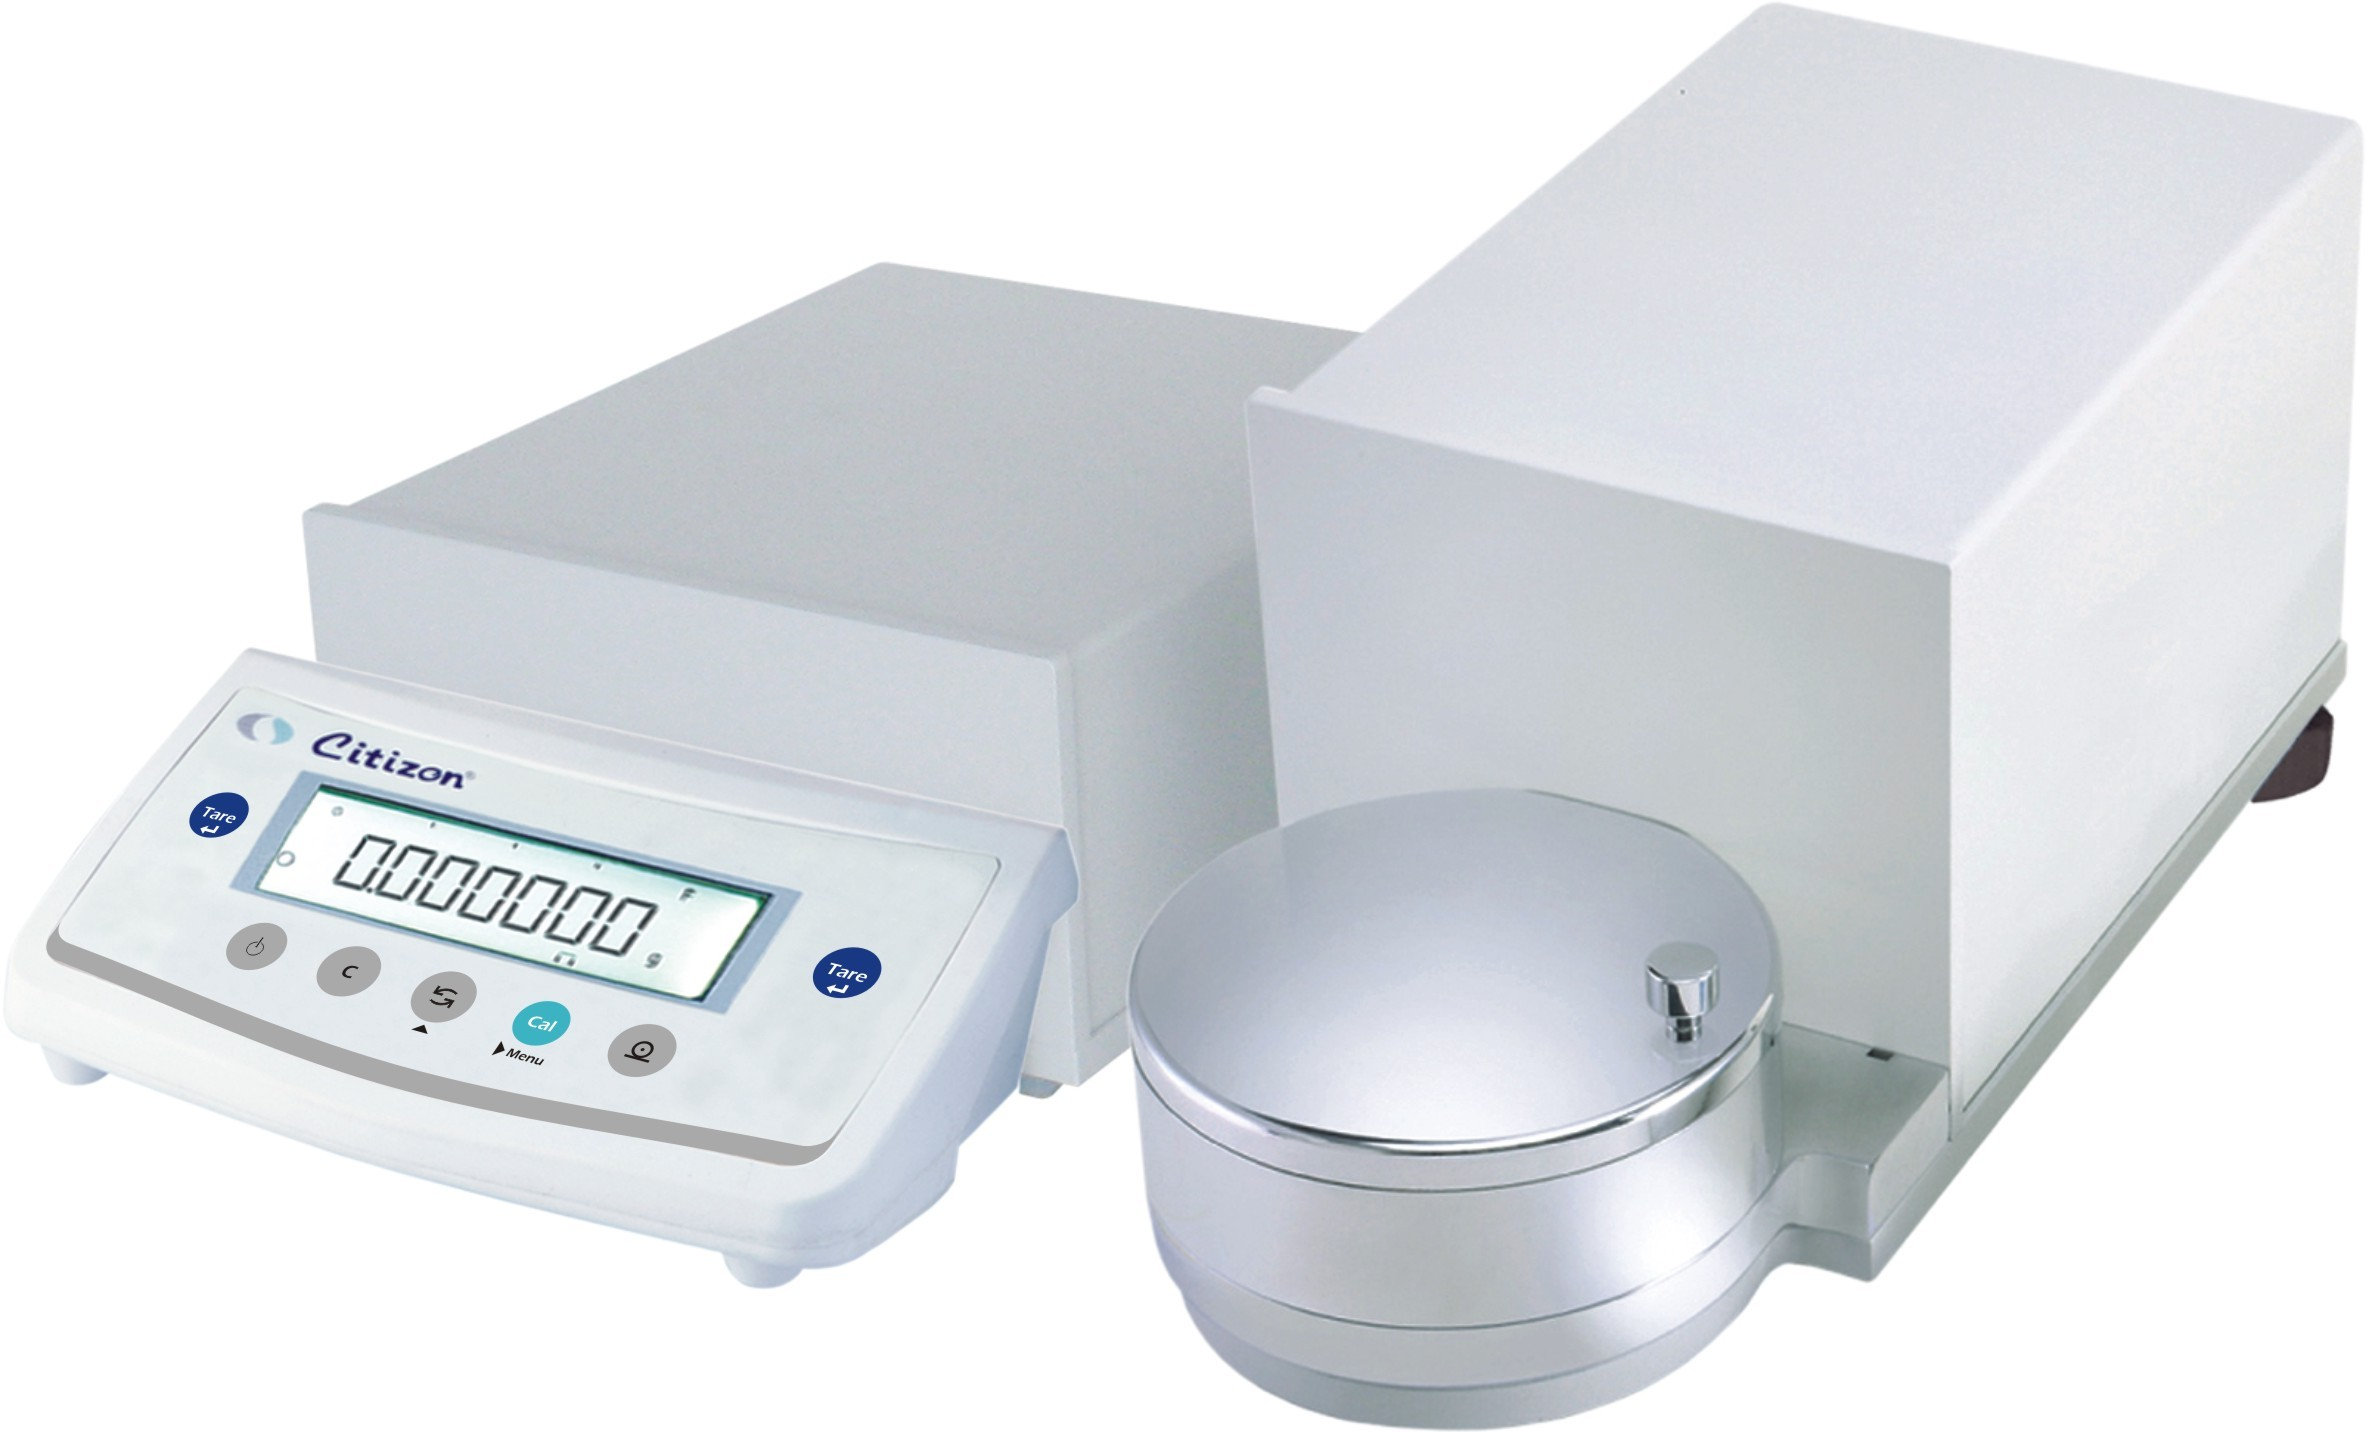 Scales and Weighing Solutions - Google+